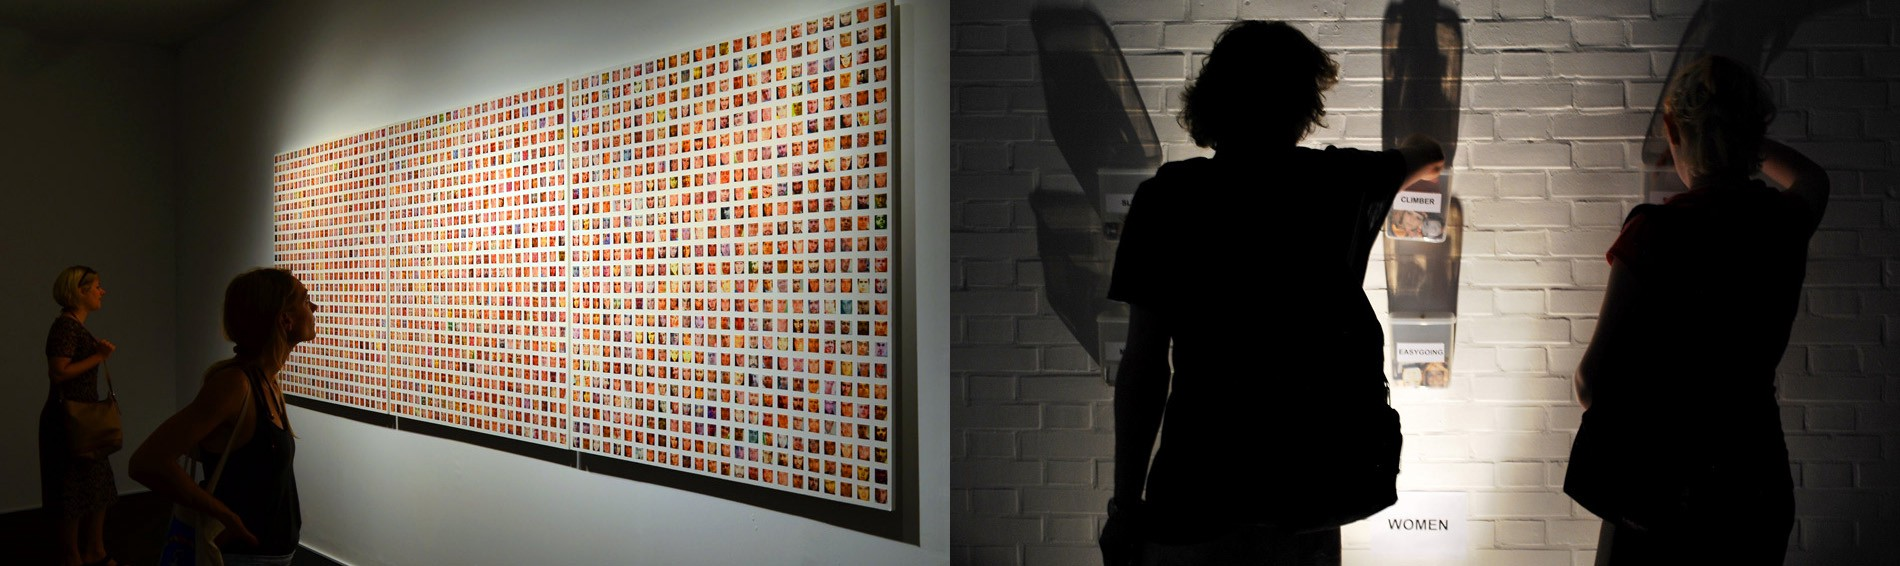 Large grid of faces on gallery wall, two people select small face chips from buckets on gallery wall.